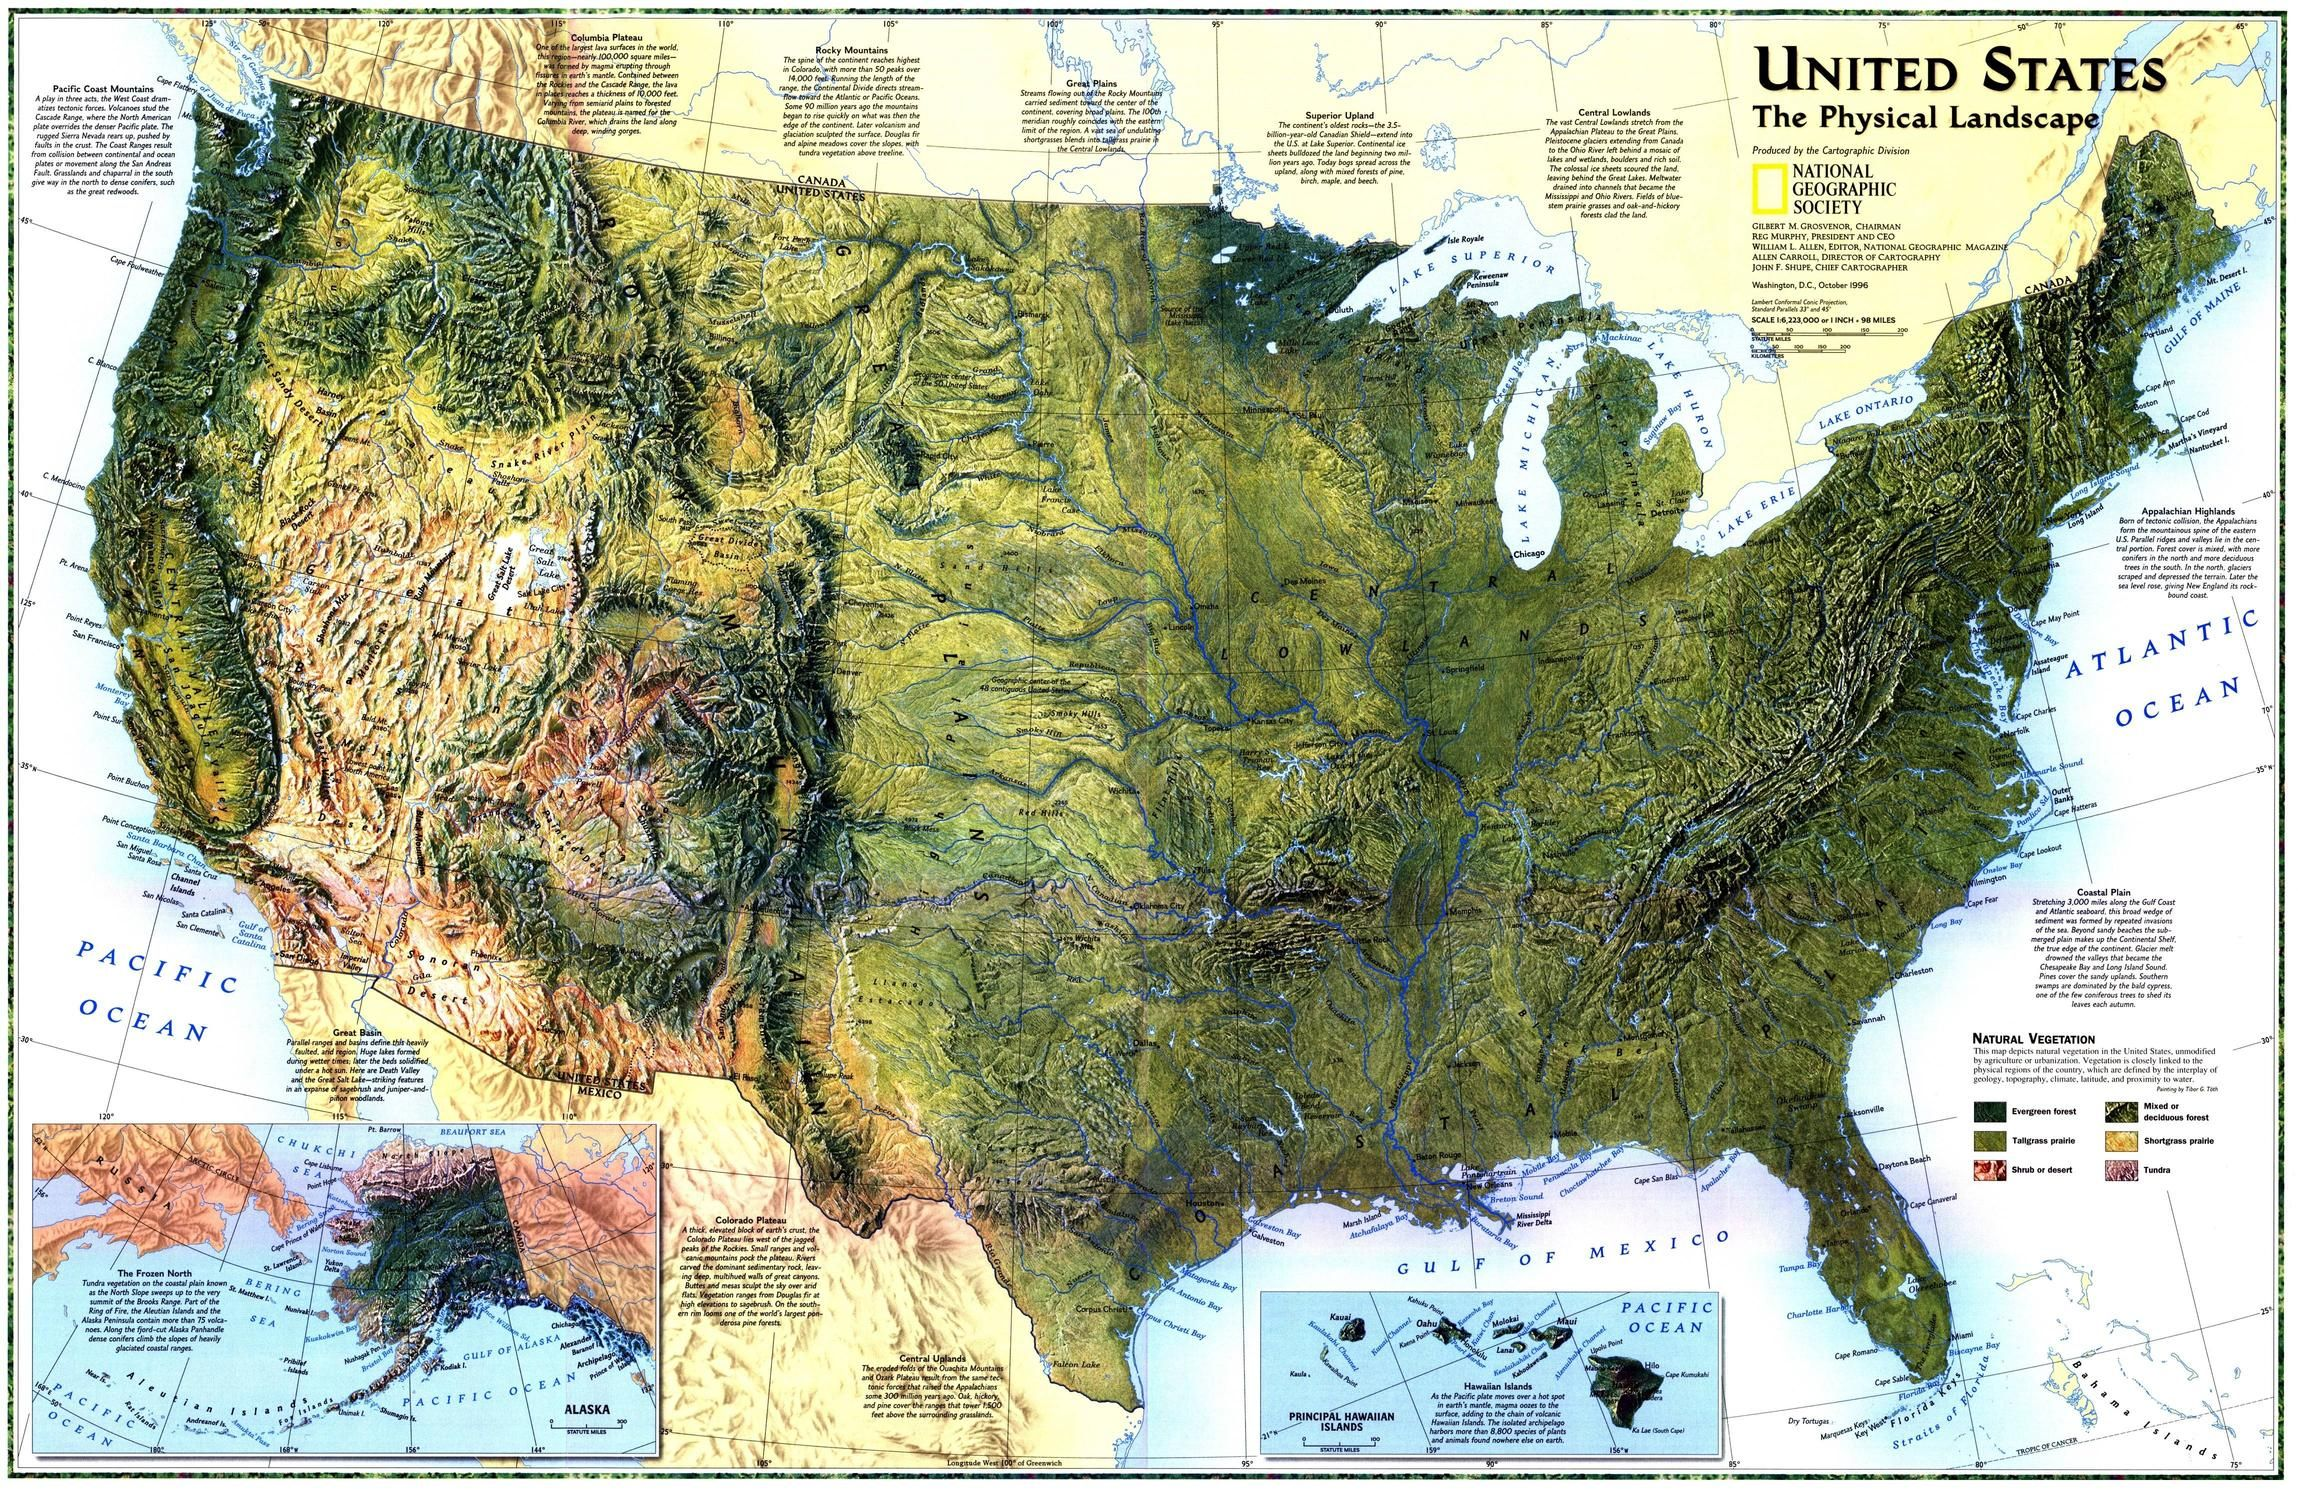 United States The Physical Landscape Map By